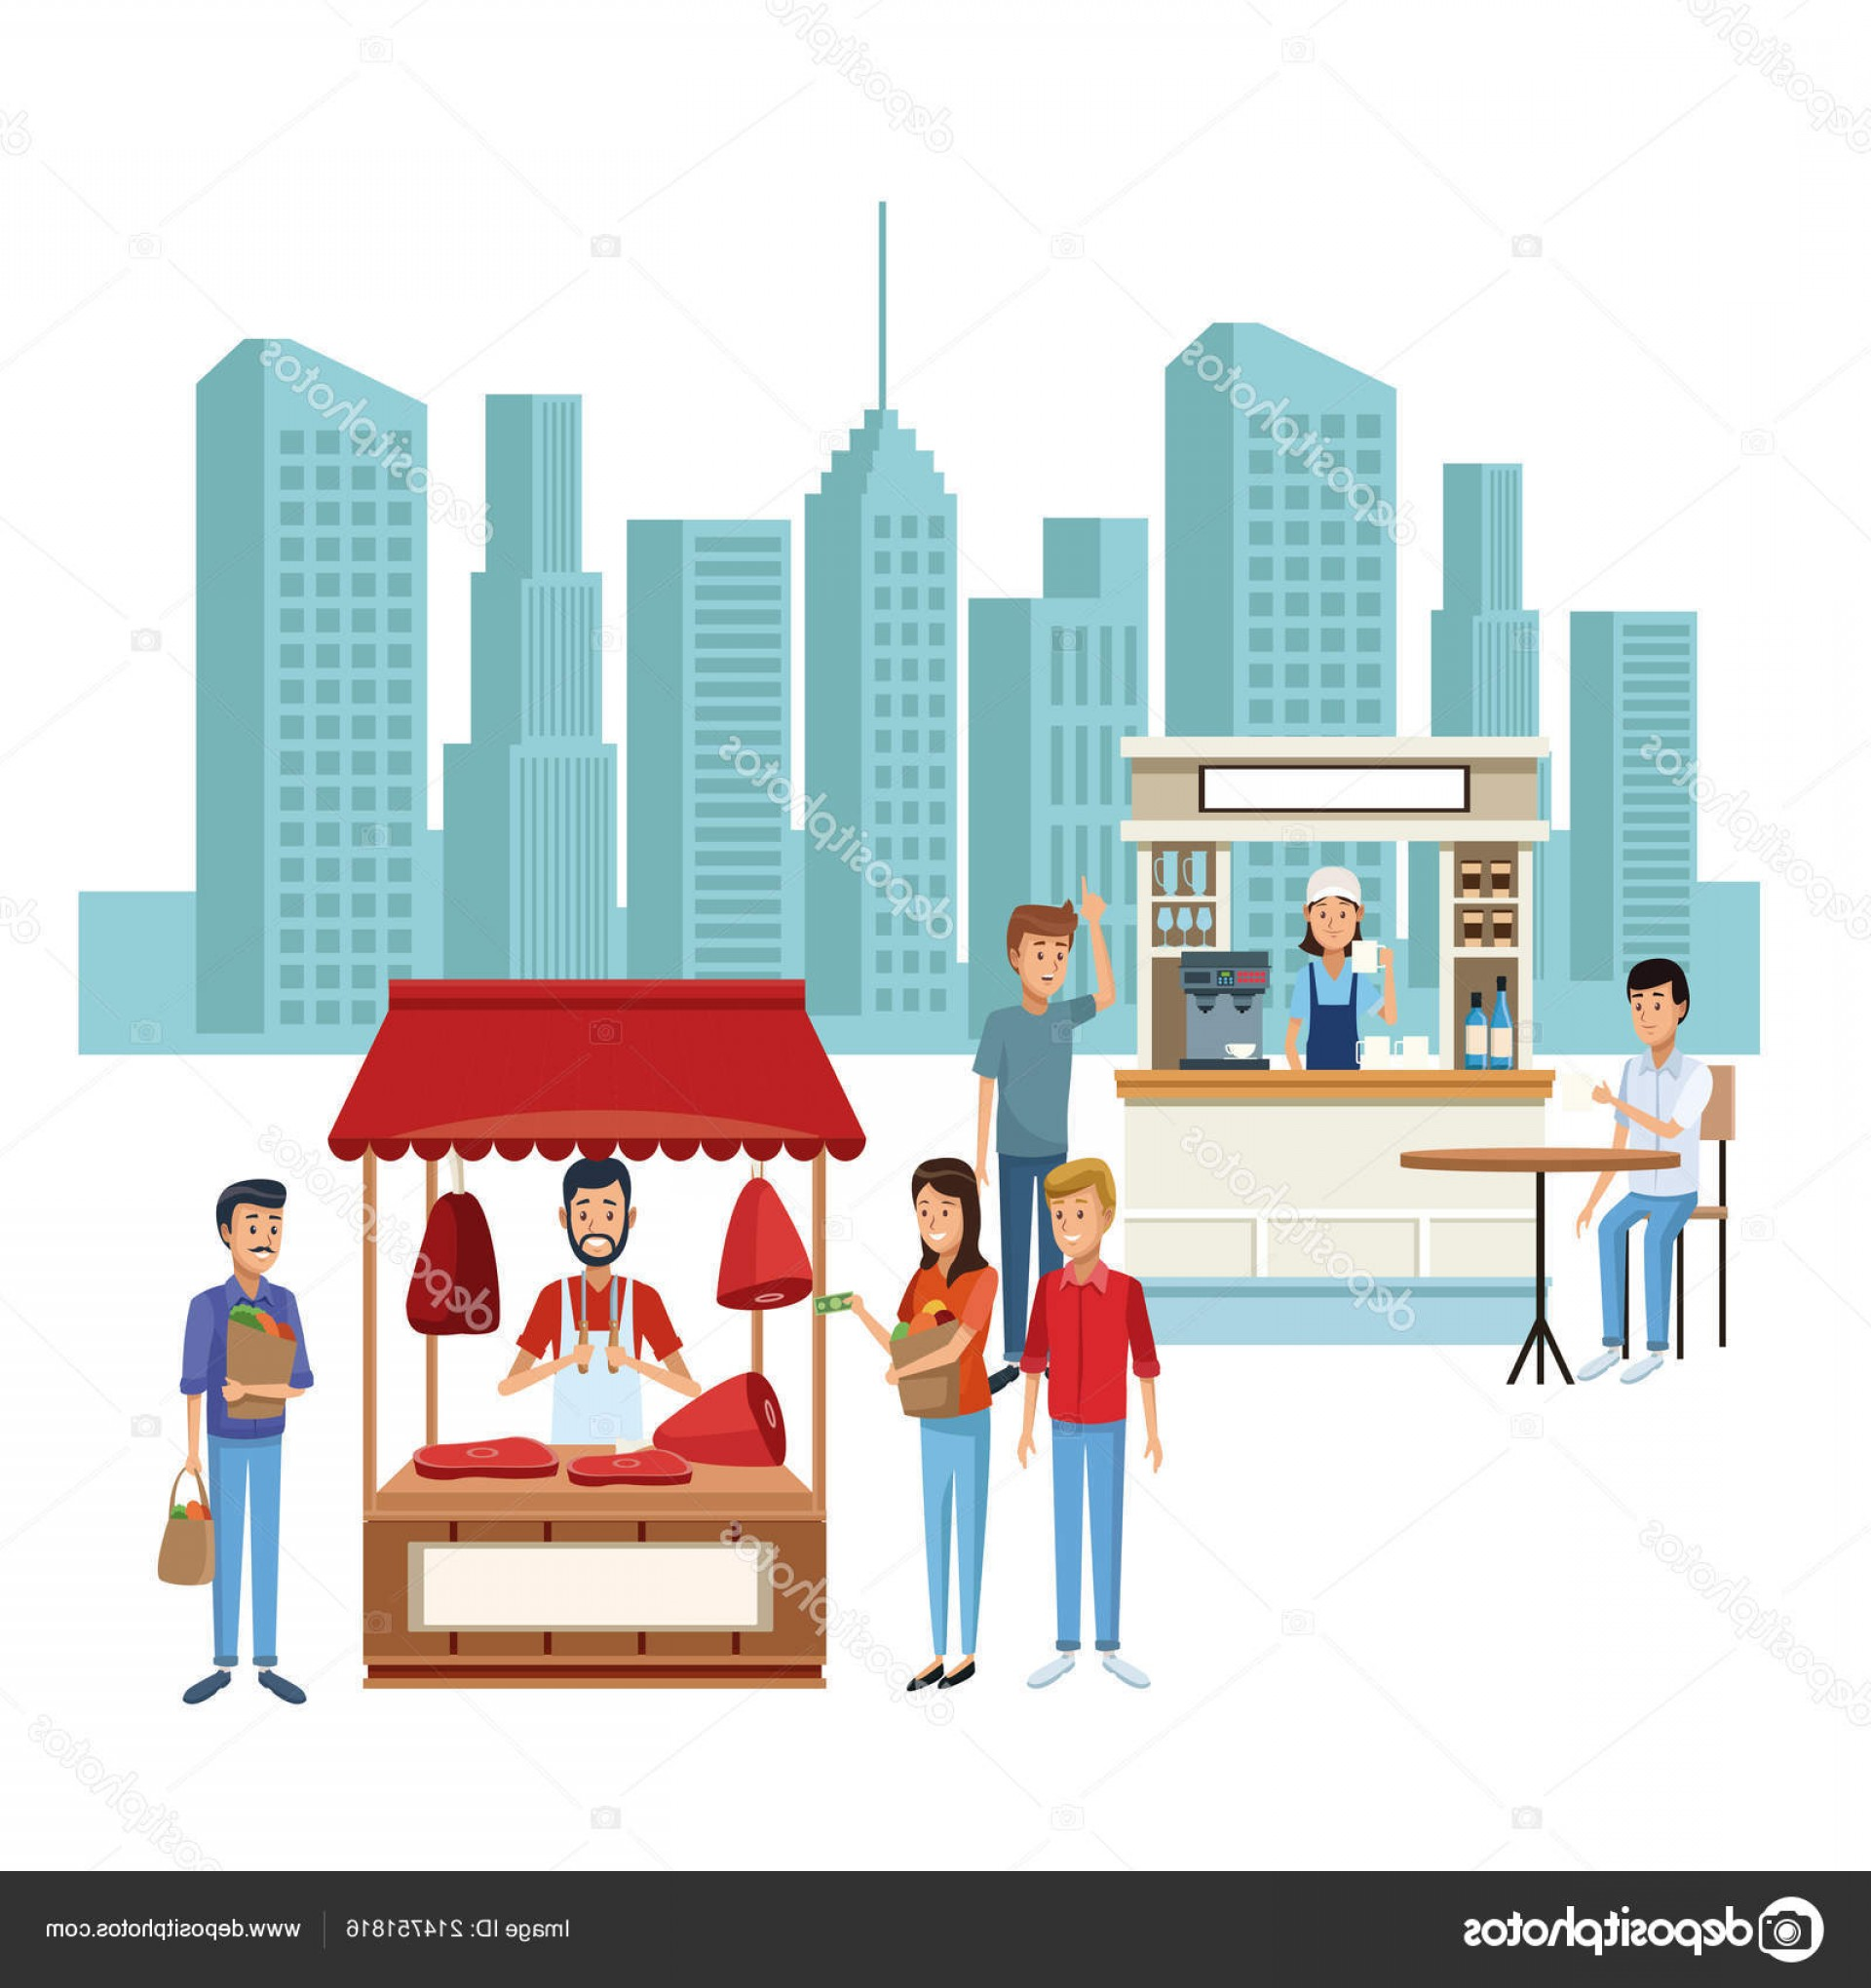 Commercial Booth Vector: Stock Illustration Food Booth And Shops